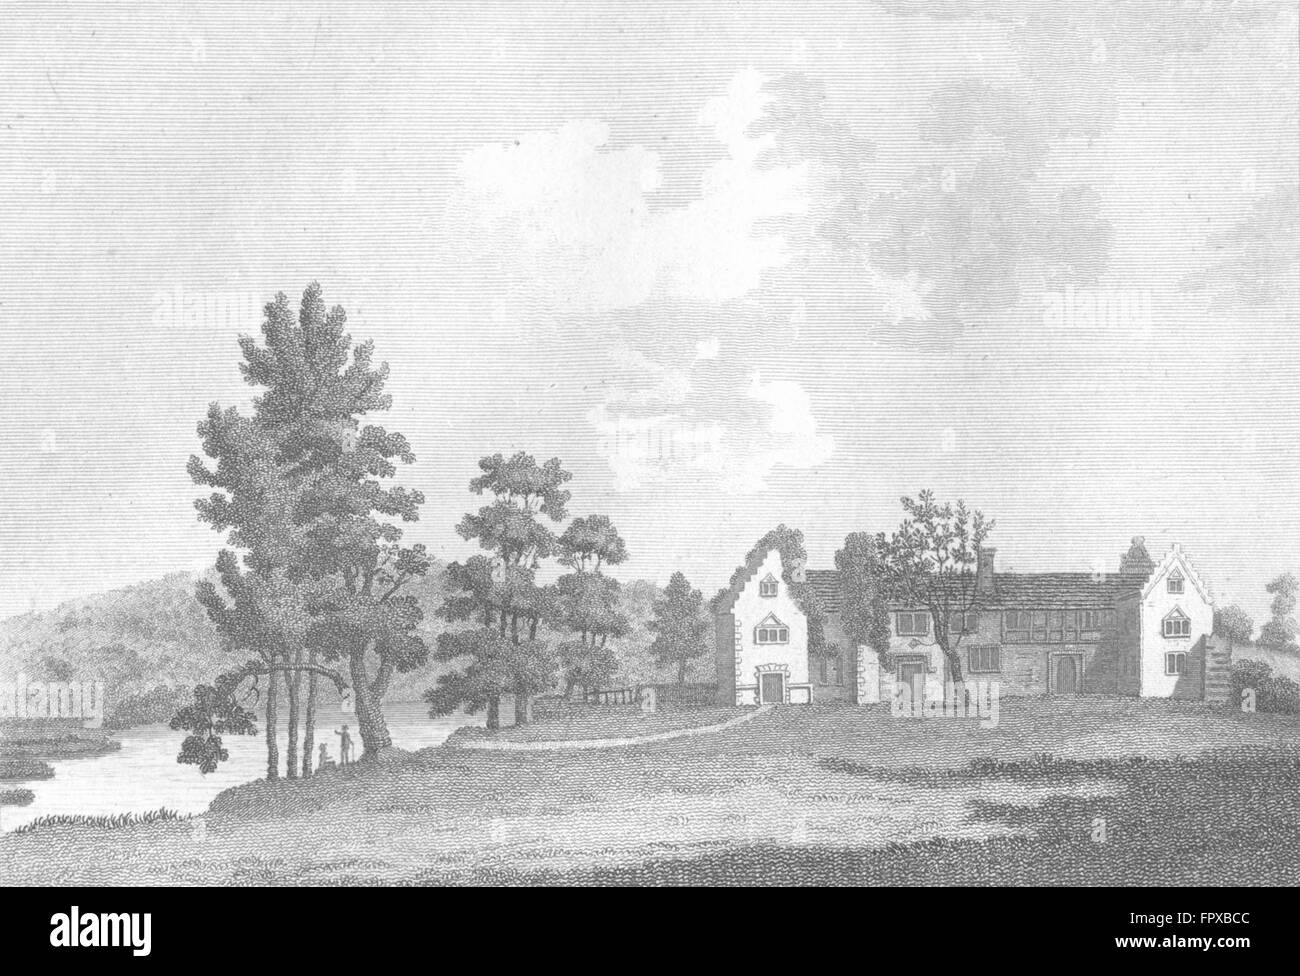 BUCKS: Medmenham Abbey Henley, Thames: Grose: 18C, antique print 1795 Stock Photo